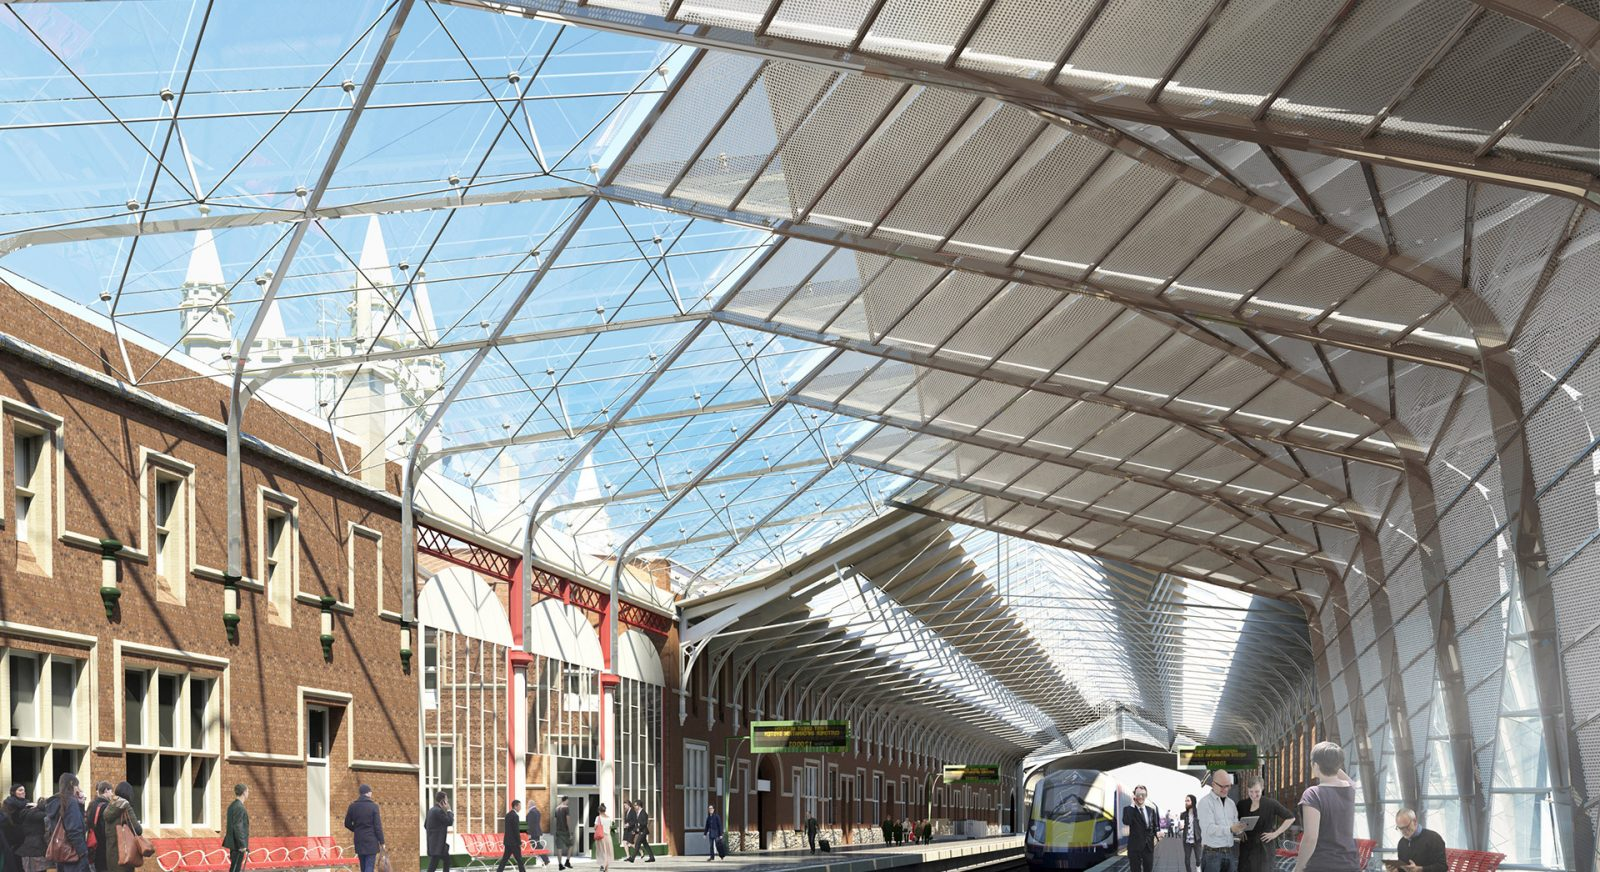 FT bristol temple meads regeneration london platform entrance canopy architects jersey architects13